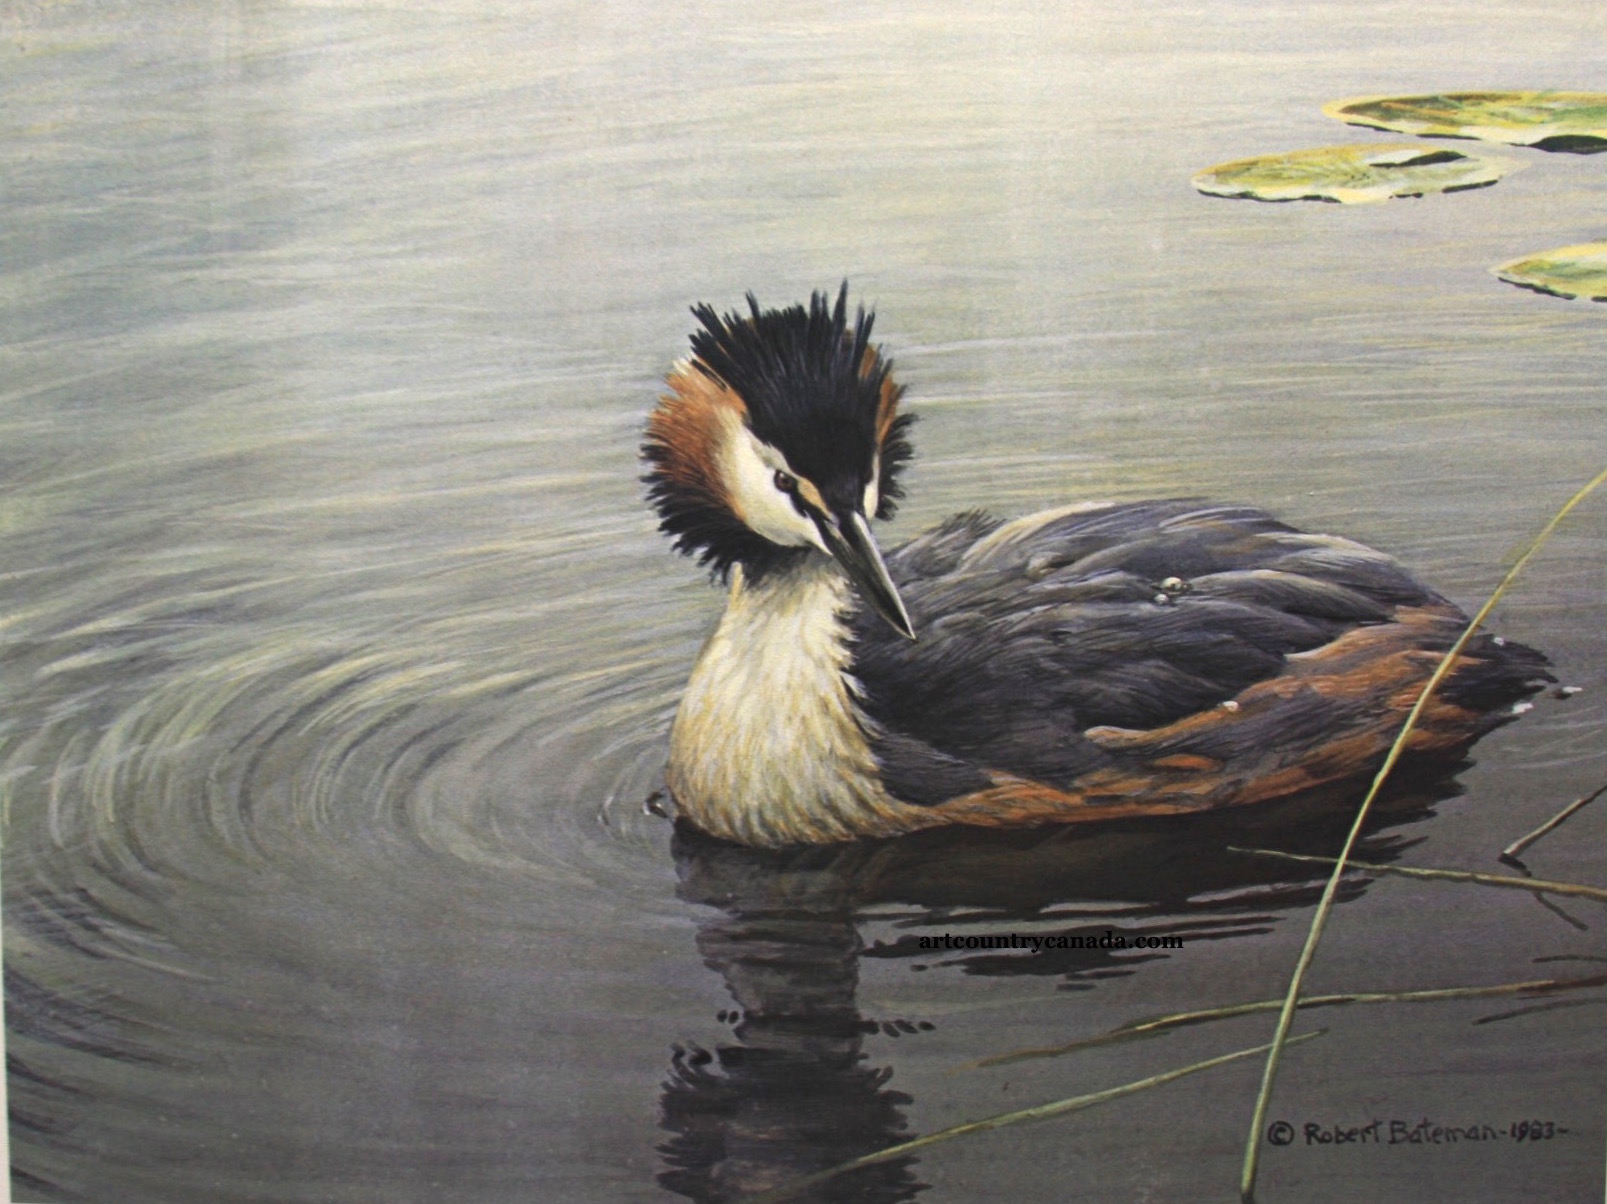 Robert Bateman Great-Crested Grebe